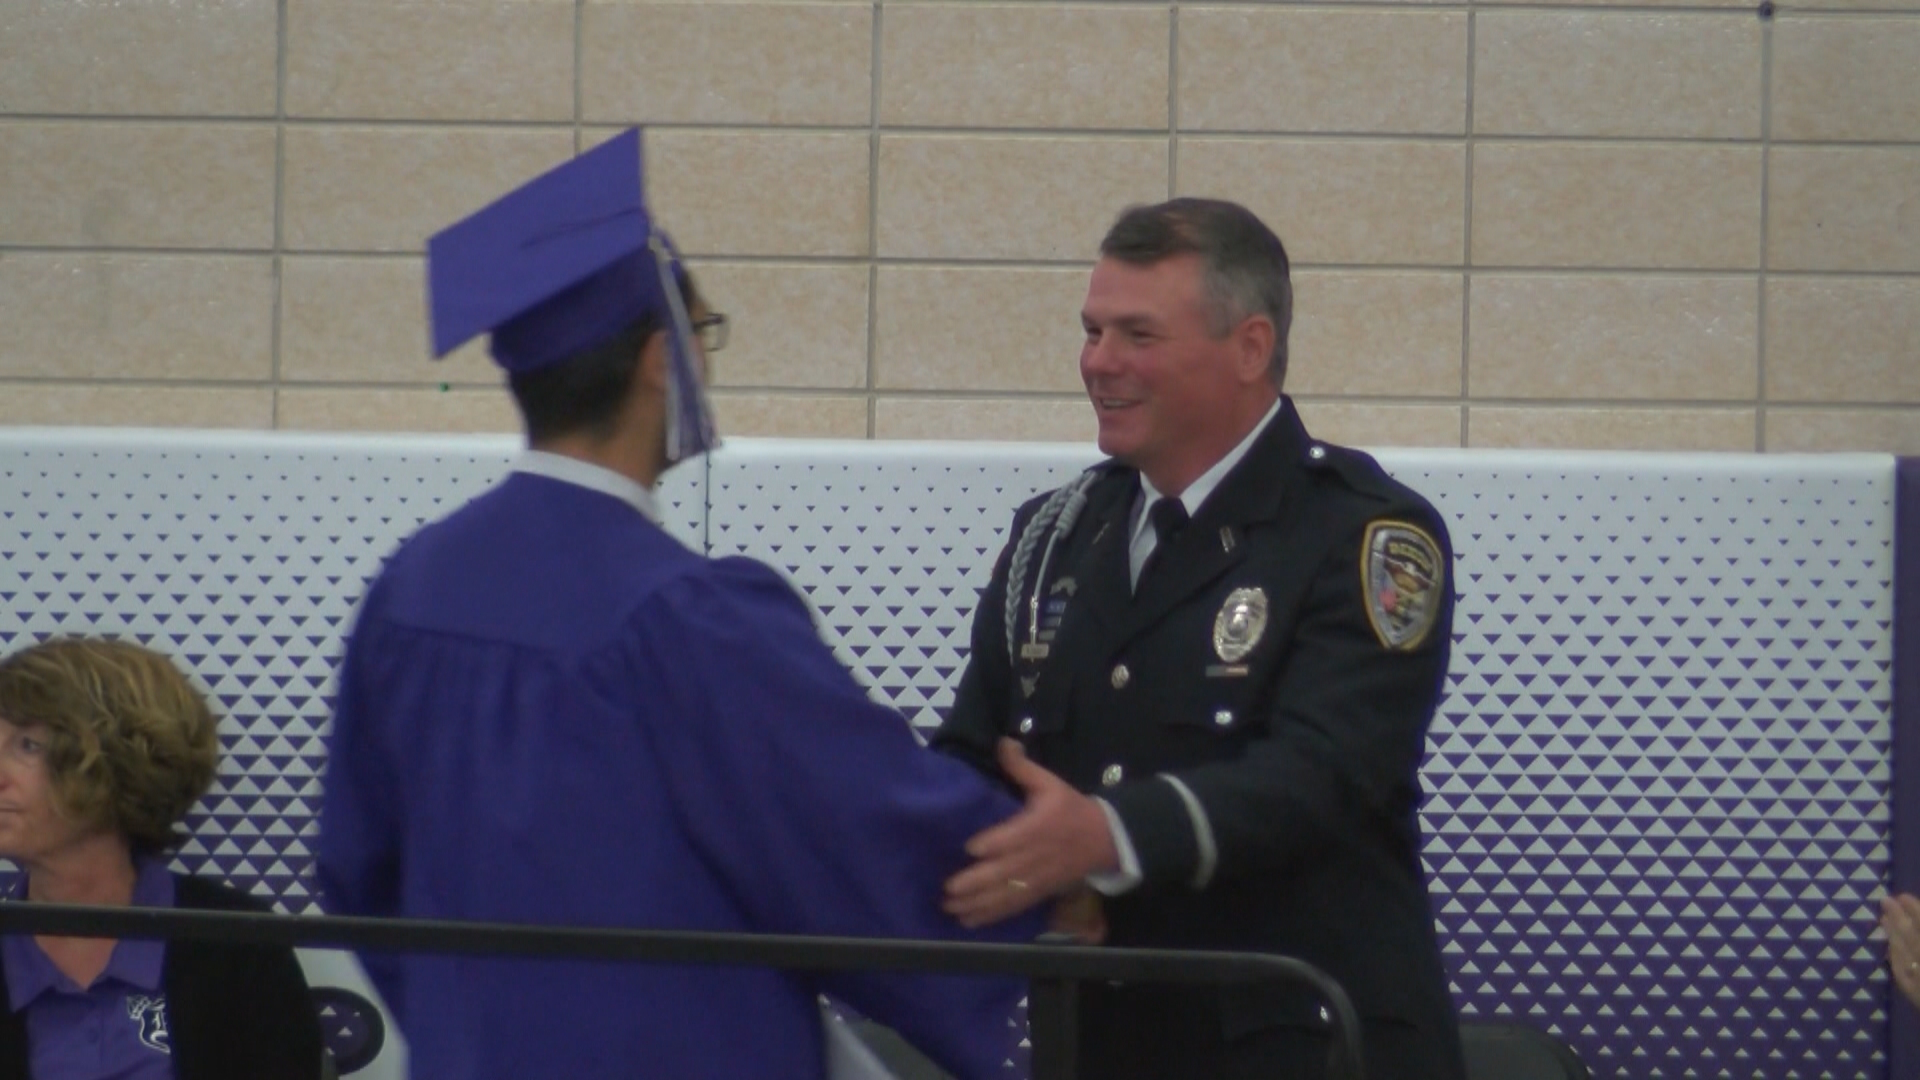 officer mark dallas_1527716734401.jpg.jpg